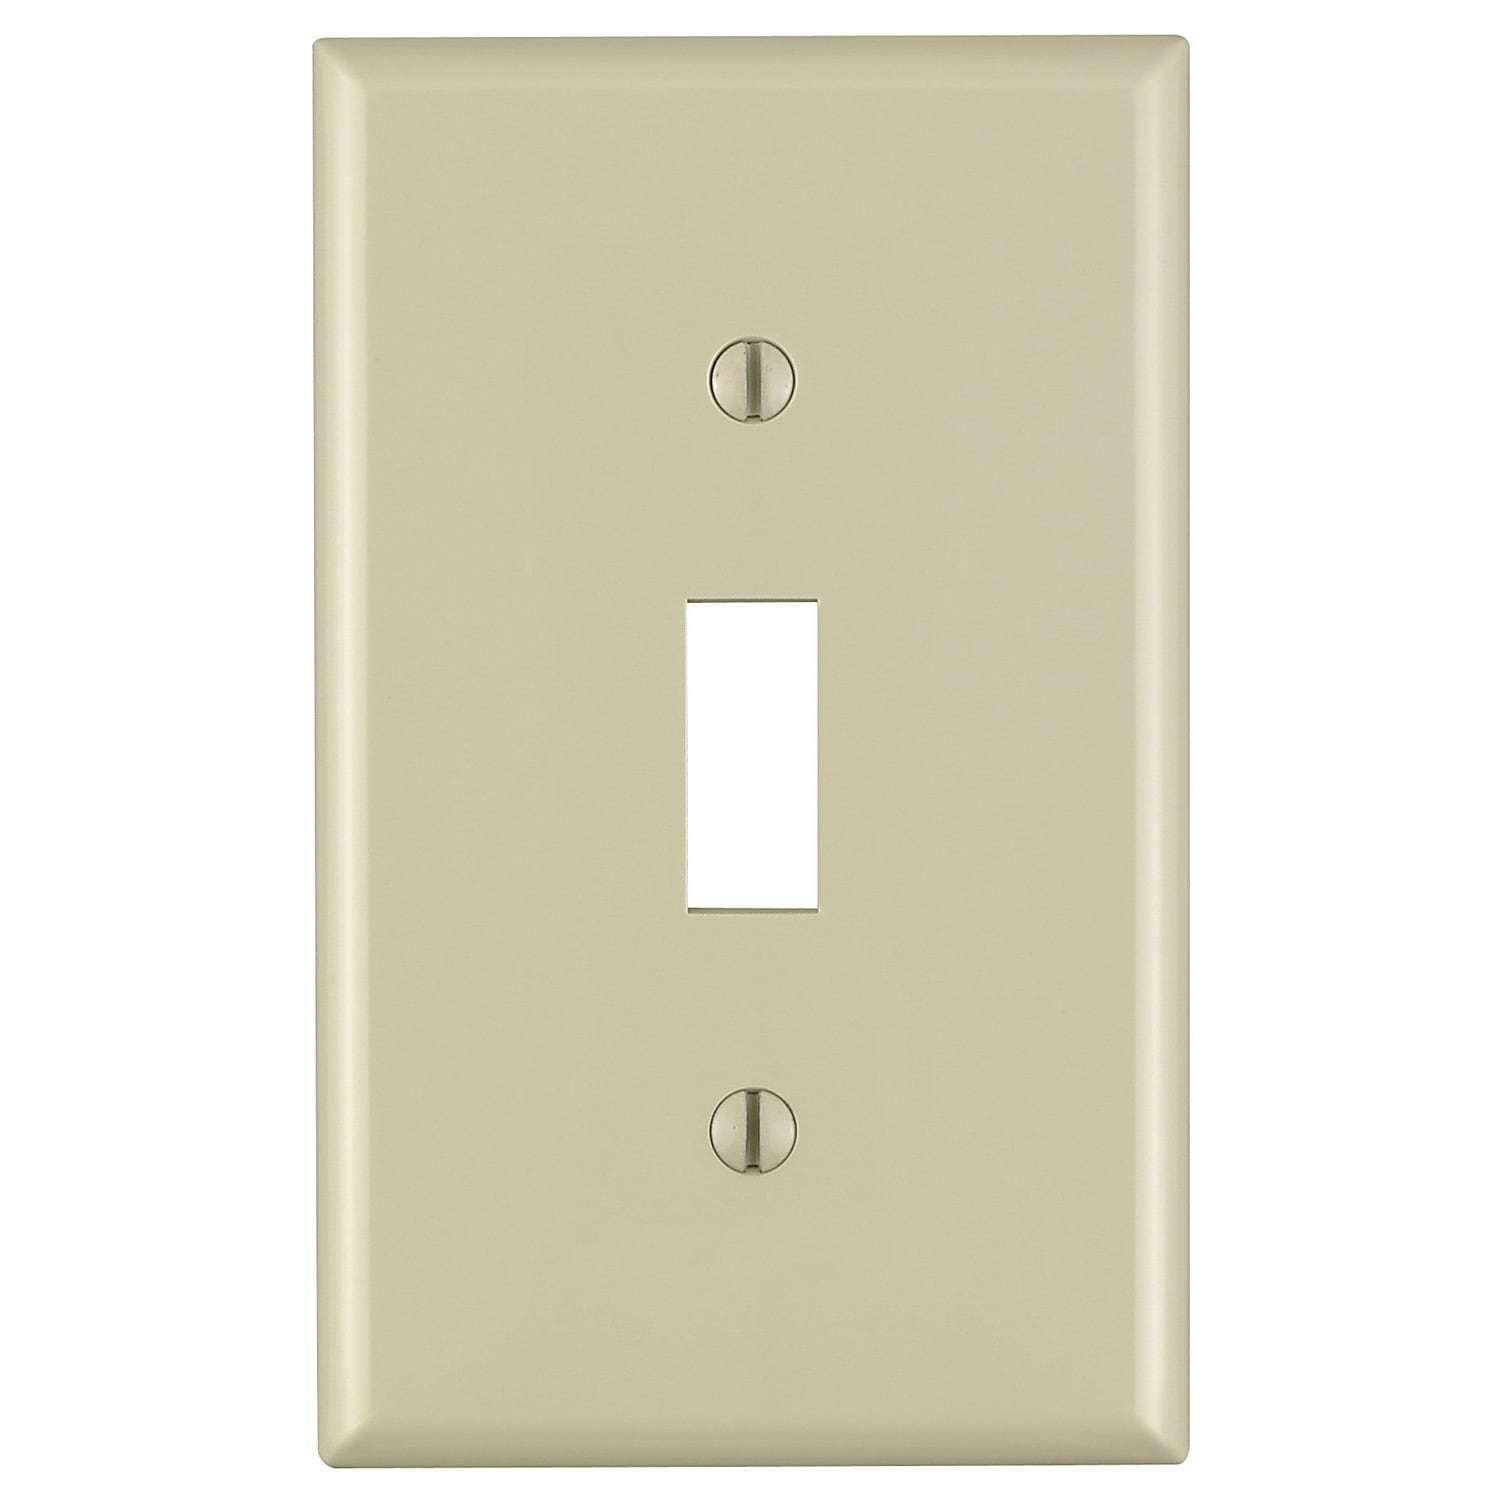 Leviton 021-80701-00I Single Gang Ivory Single Toggle Commercial Grade Wallplate (Switches&outlet covers)